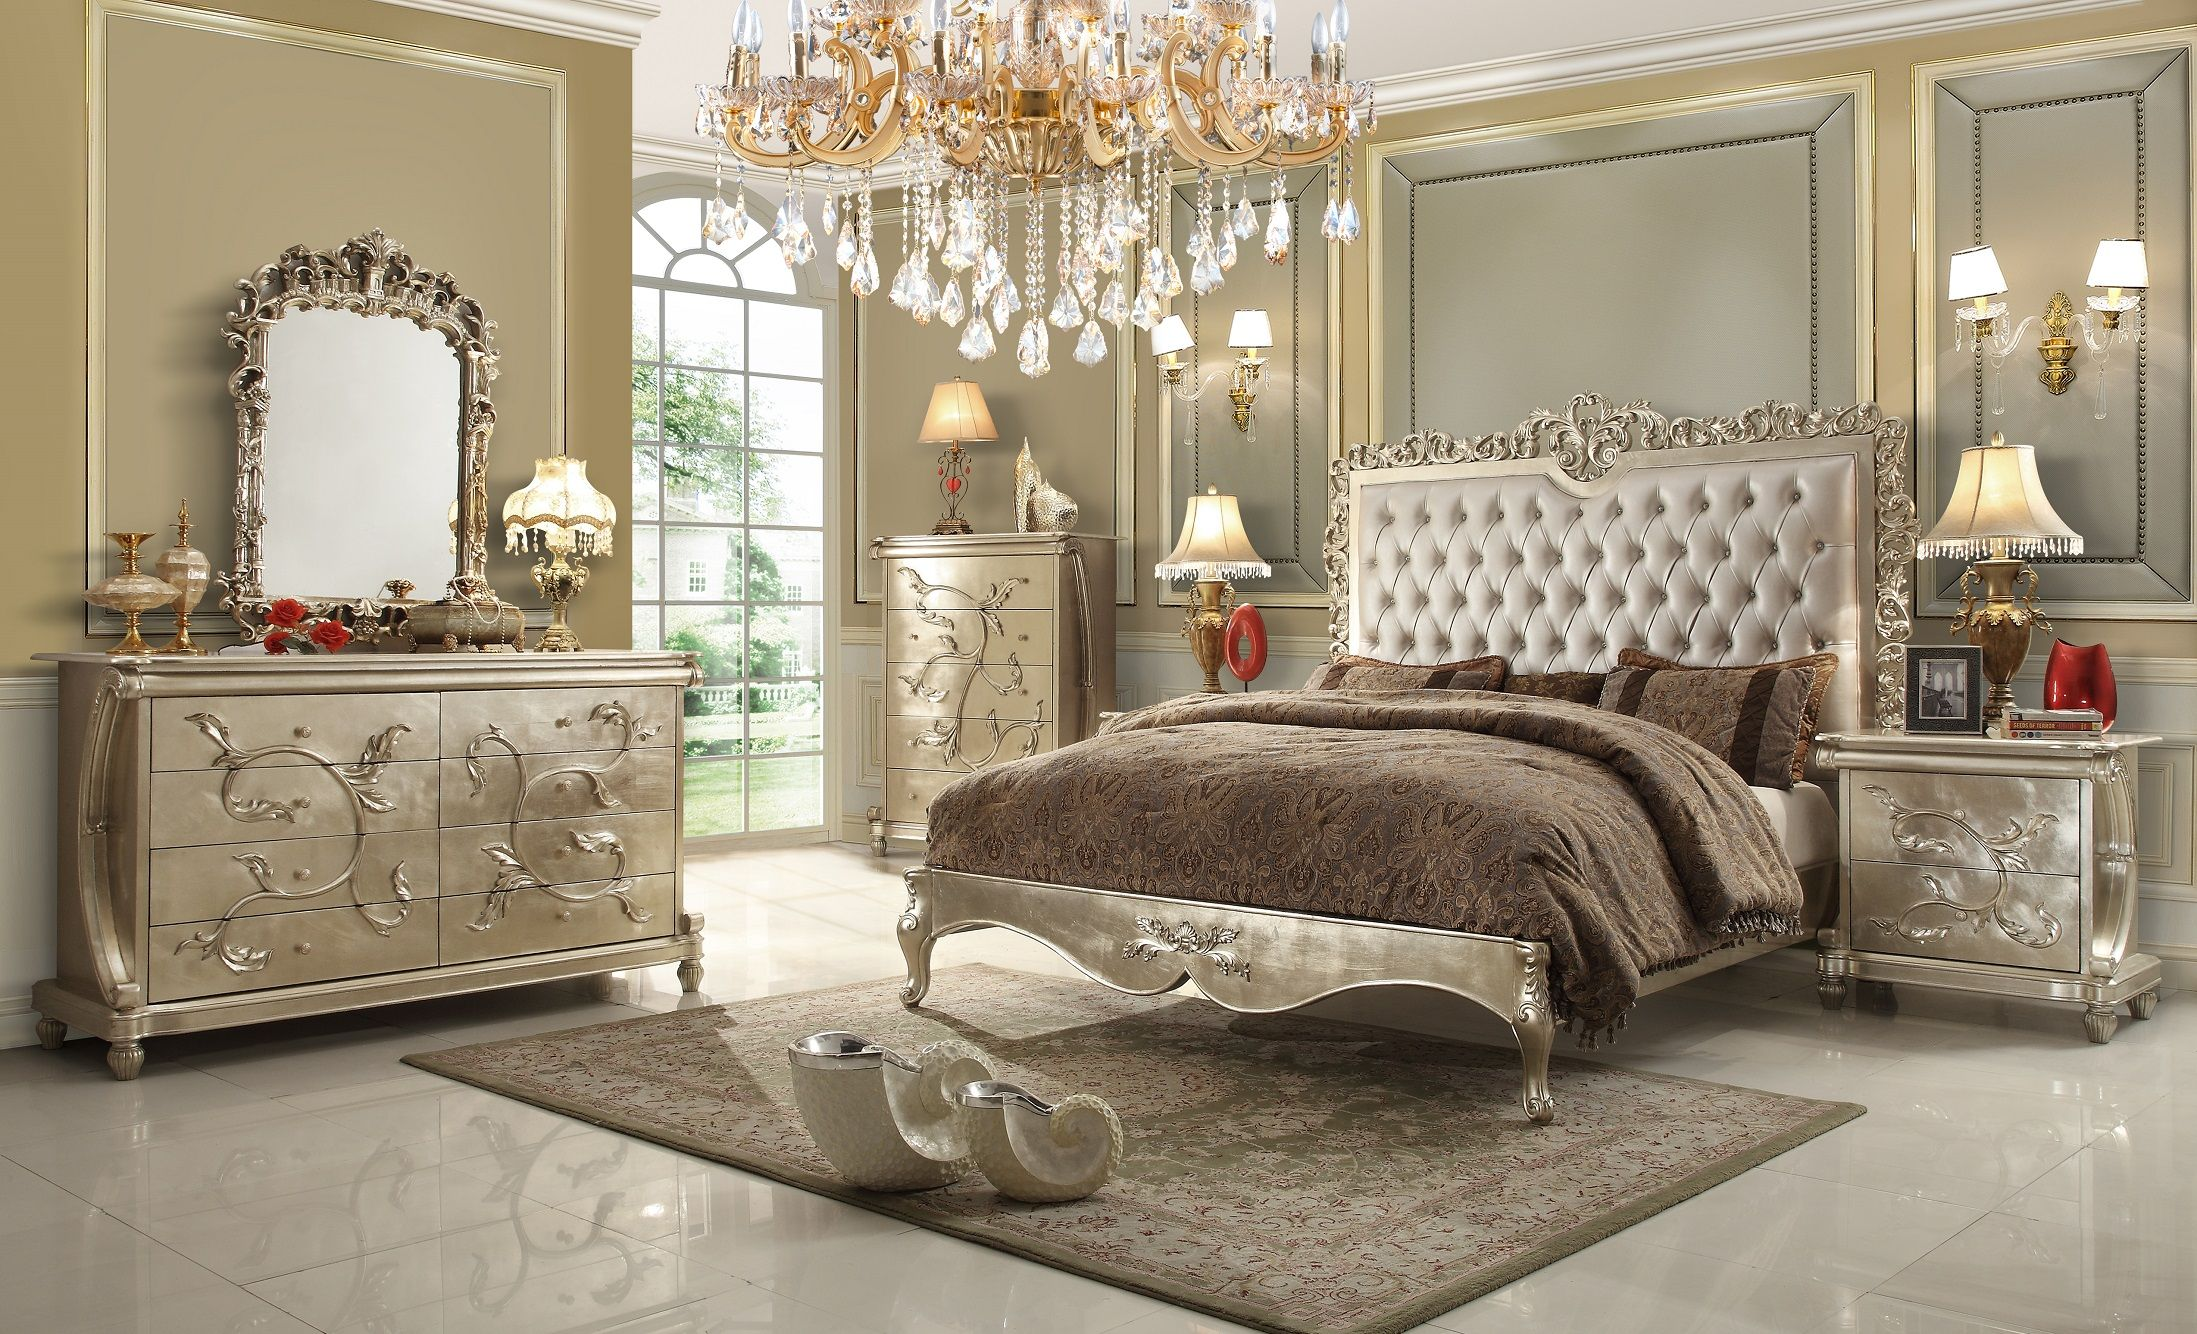 5pc Homey Design Hd 13005 Royal Palace Bedroom Set